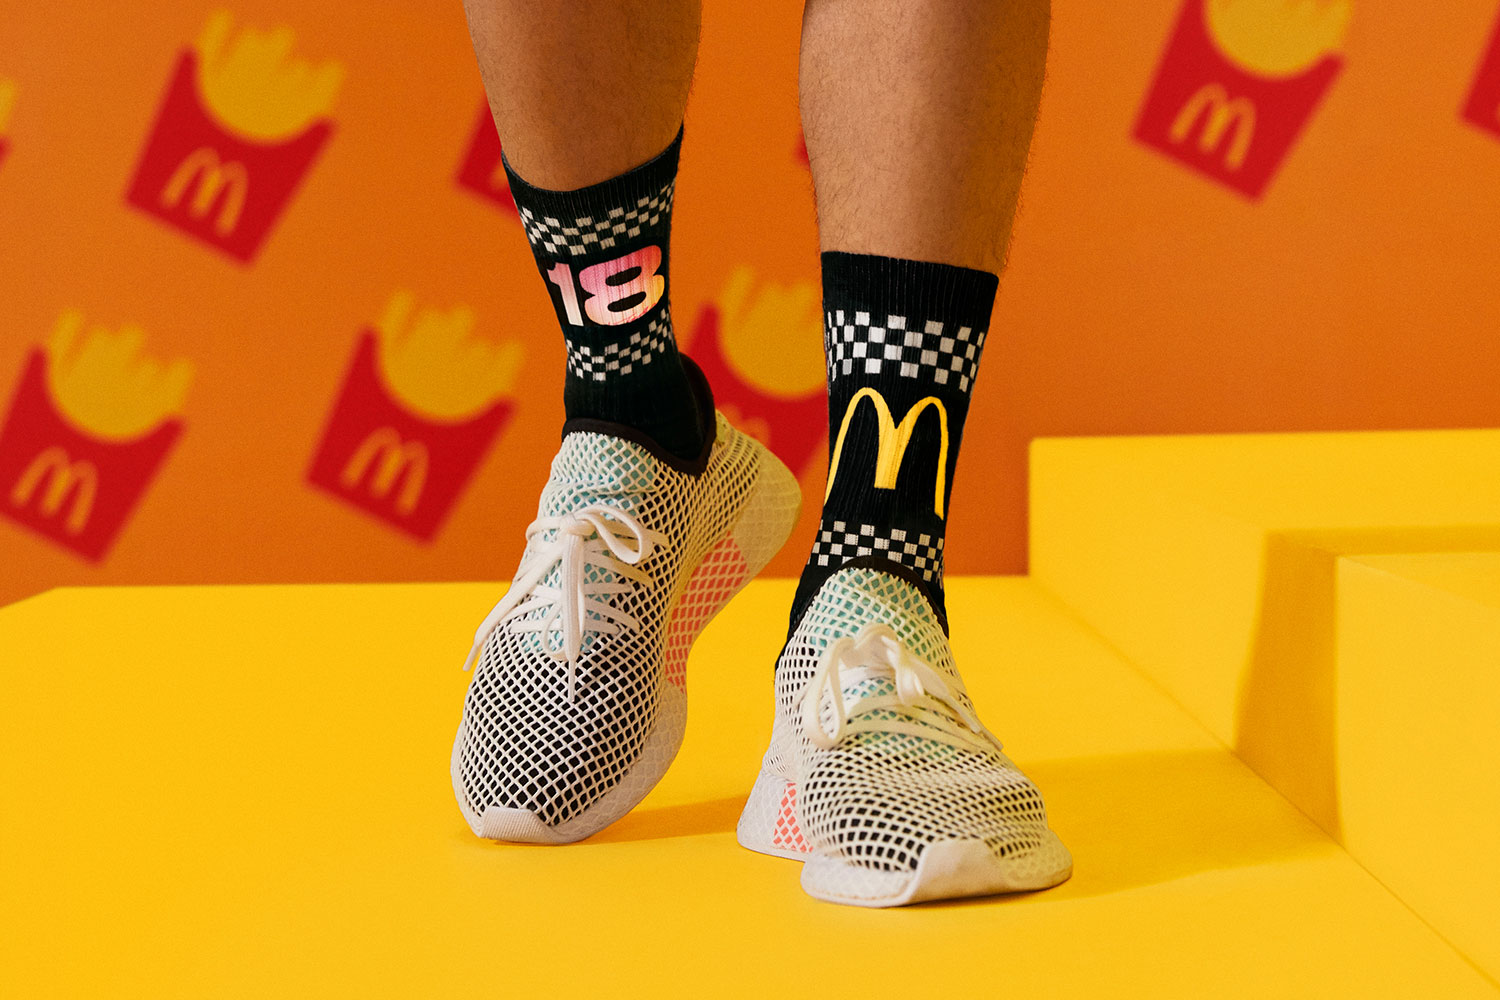 black socks with Joe Freshgoods number 18 and McDonald's logo in white mesh shoes